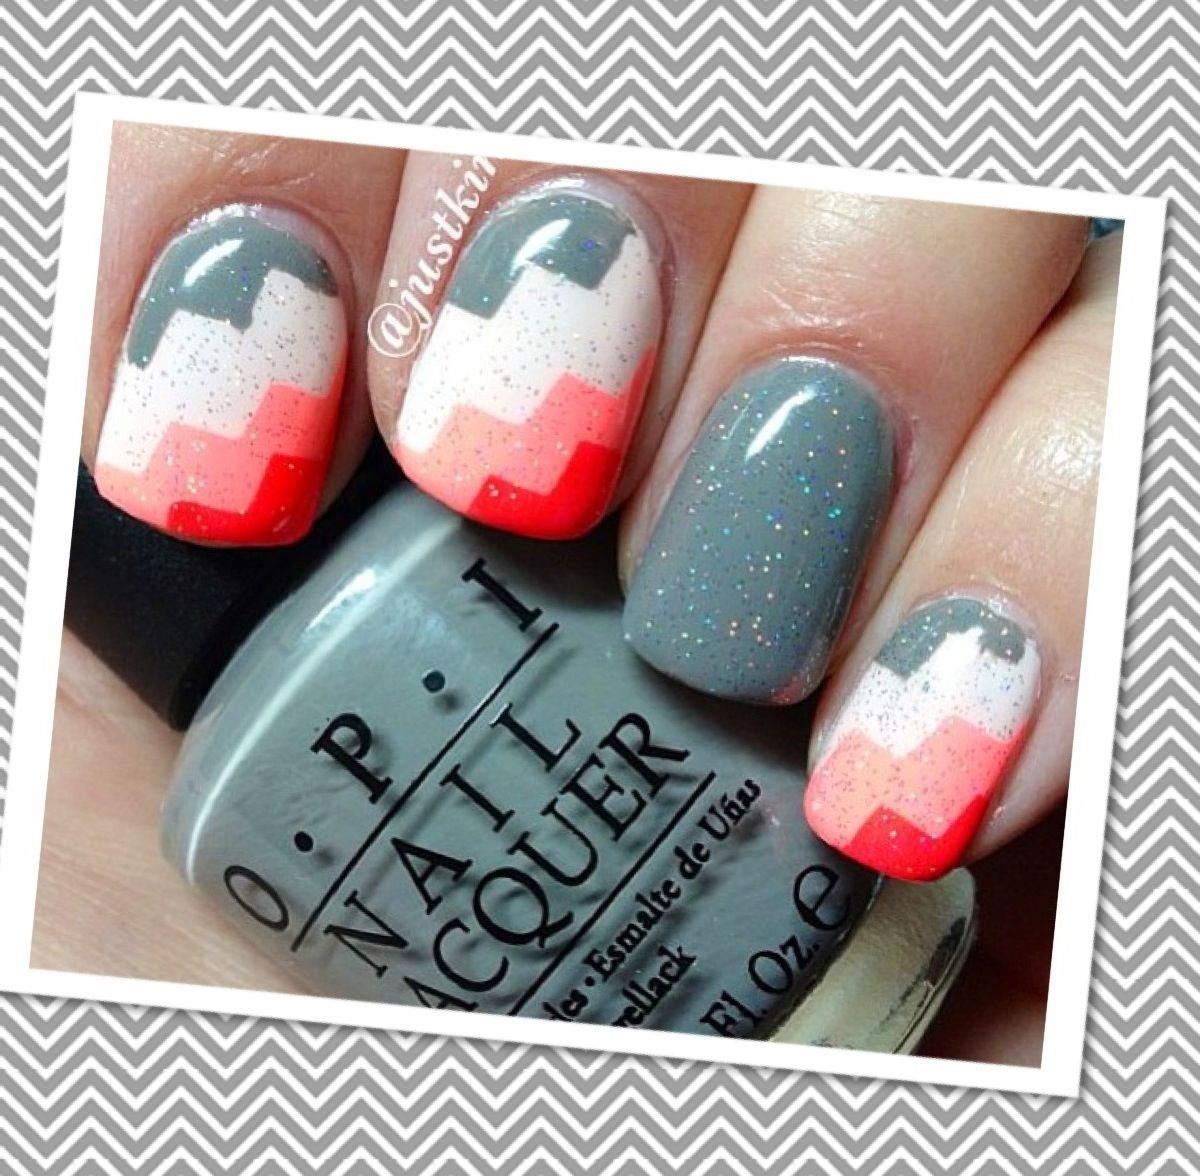 cute nail designs pinterest - photo #38